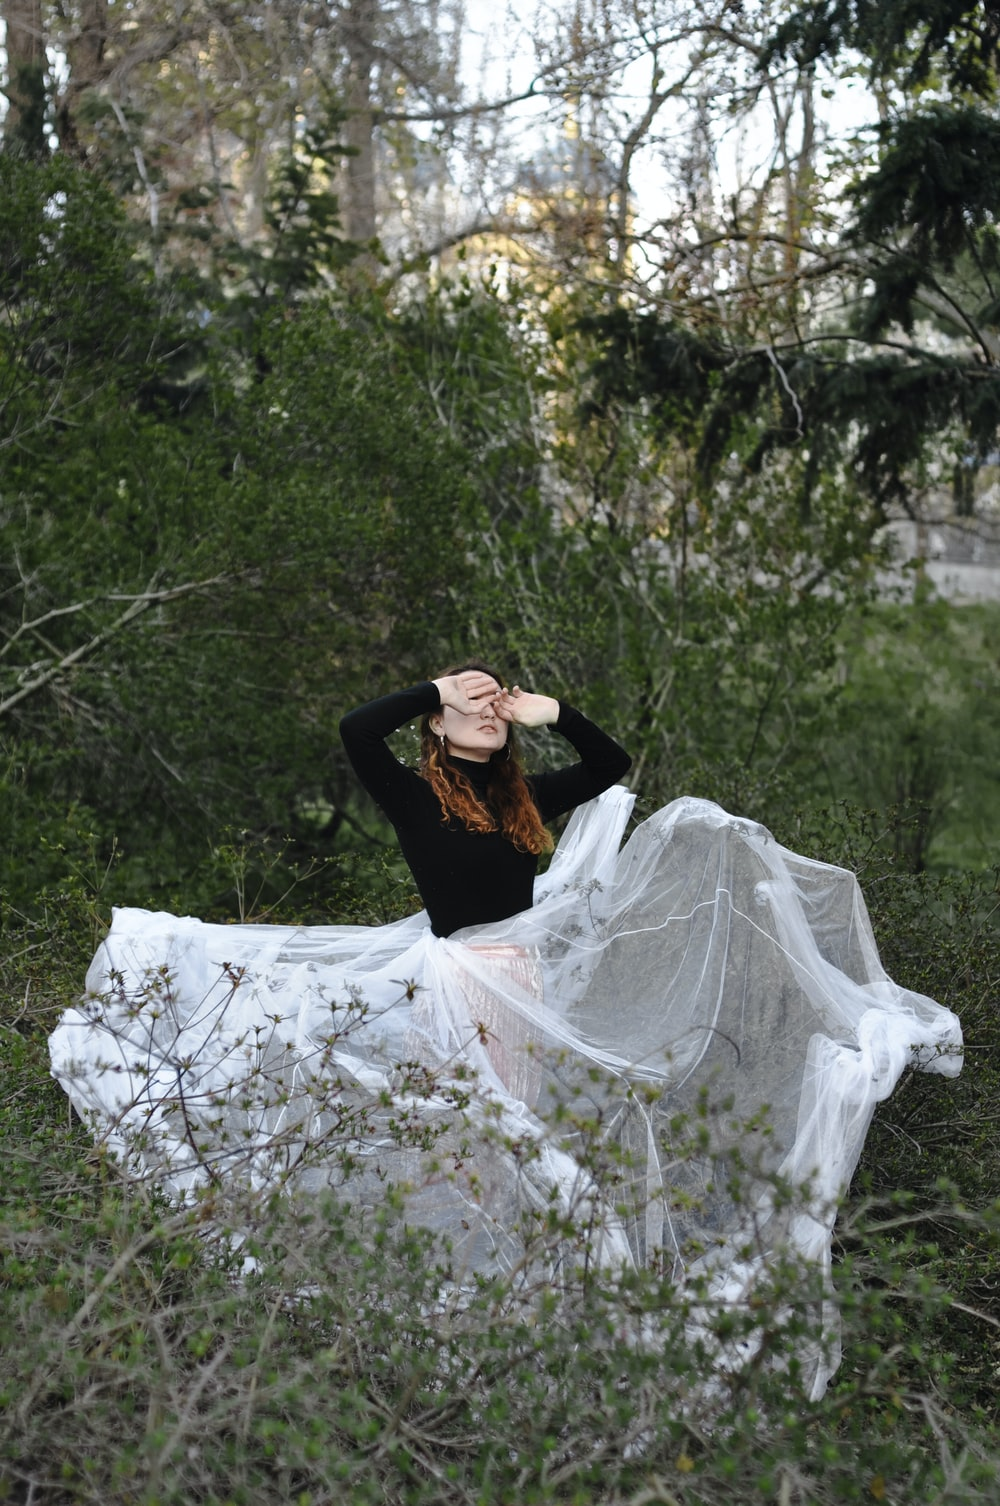 woman in white and black dress sitting on forest